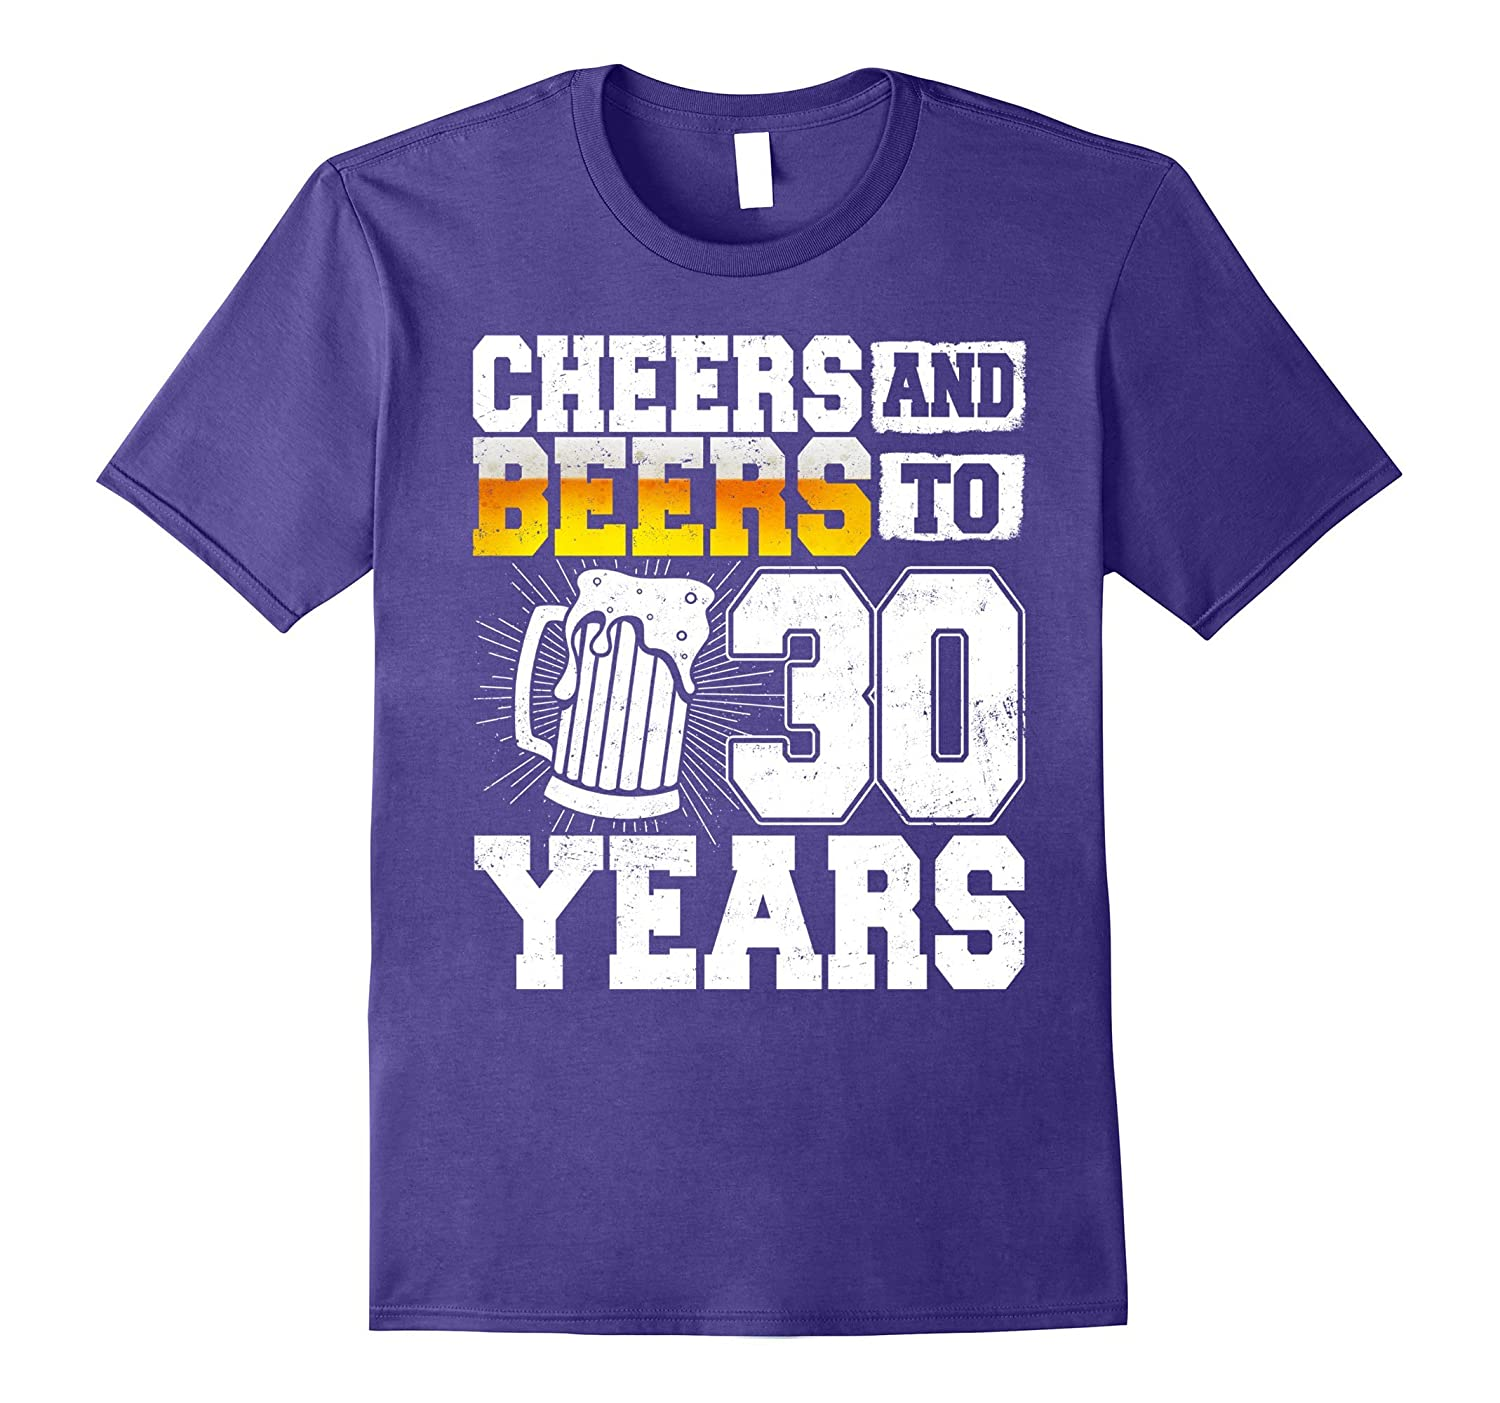 830d6a2257 Cheers And Beers To 30 Years T-Shirt 30th Birthday-CL – Colamaga